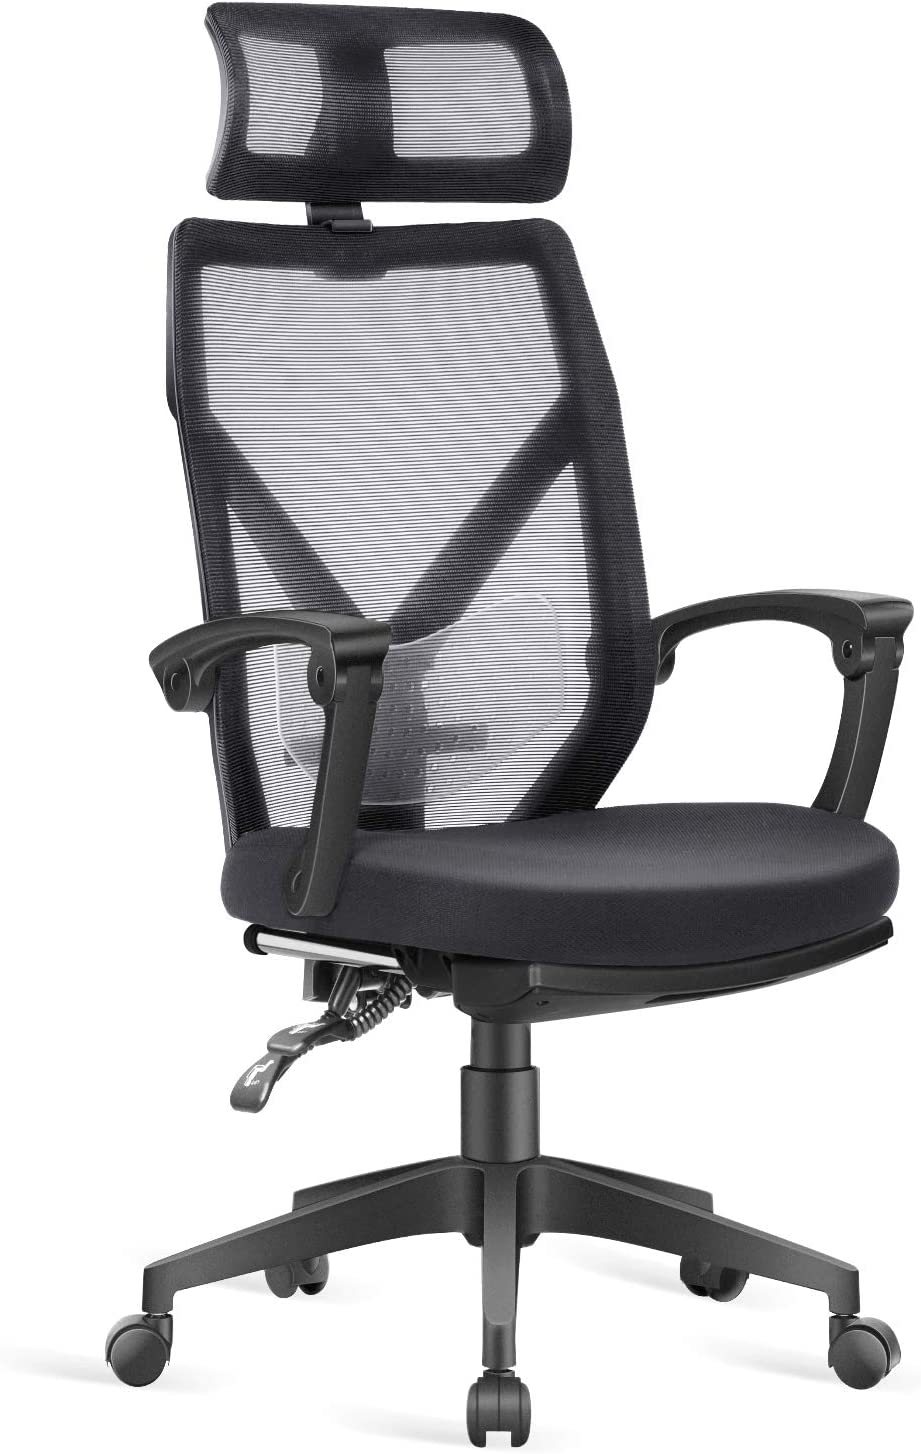 Office Chair - Dripex Home Office Desk Chair - Ergonomic Computer Chair with Footrest and Lumbar Support - Mesh Recliner Chair